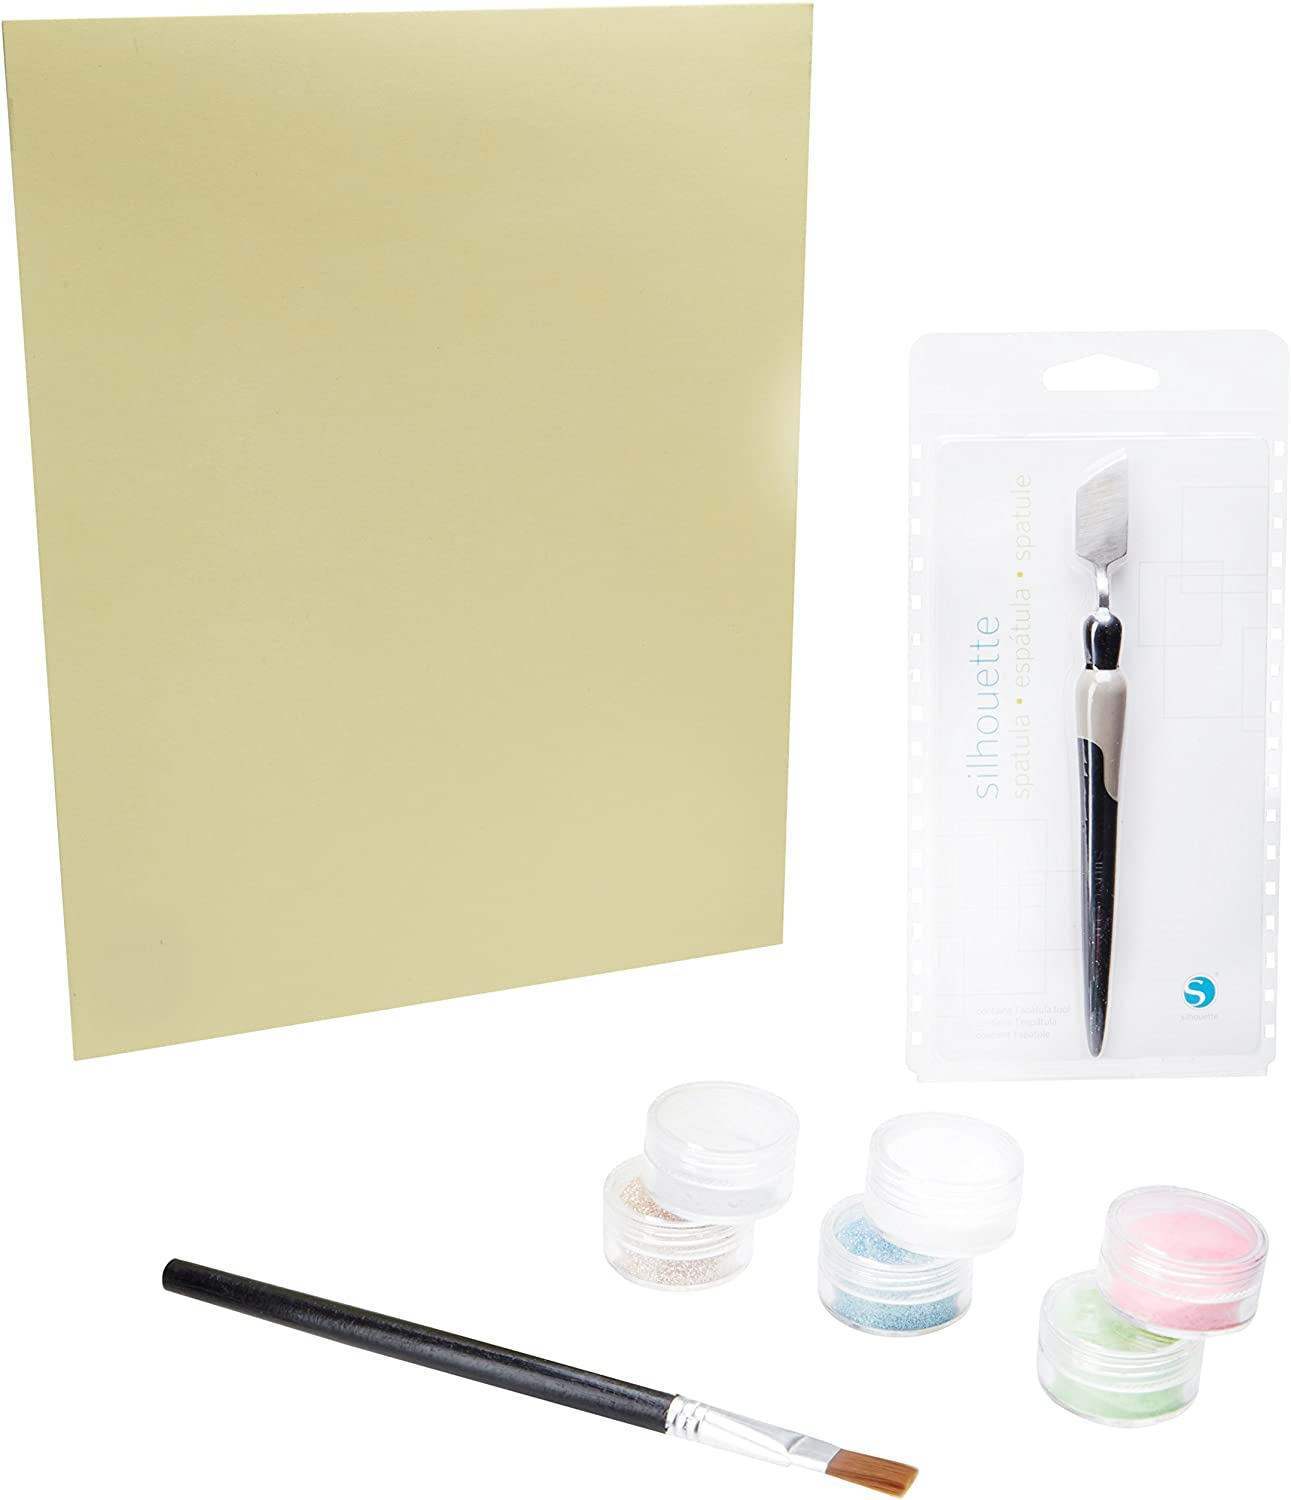 Silhouette Double-Sided Adhesive Paper Original Version